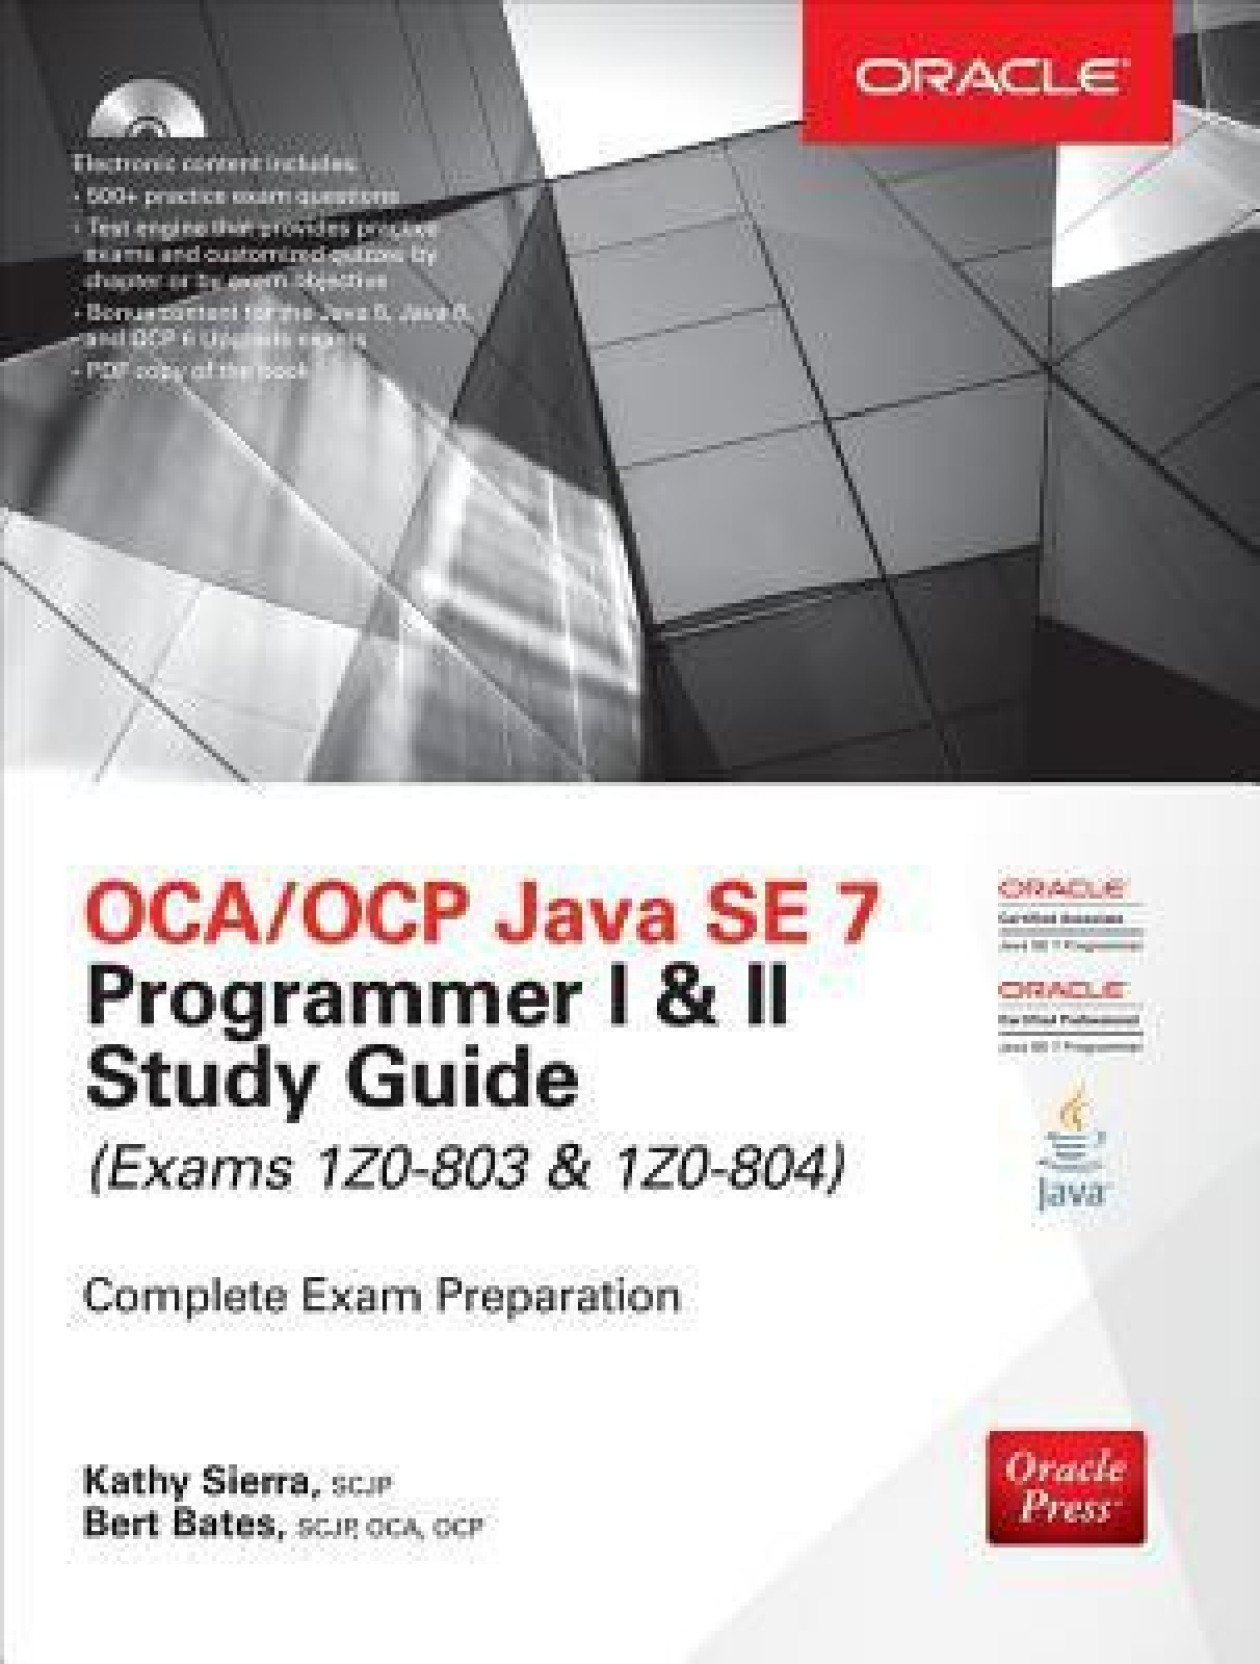 ... Java SE 7 Programmer I & II Study Guide (Exams 1Z0-. Home